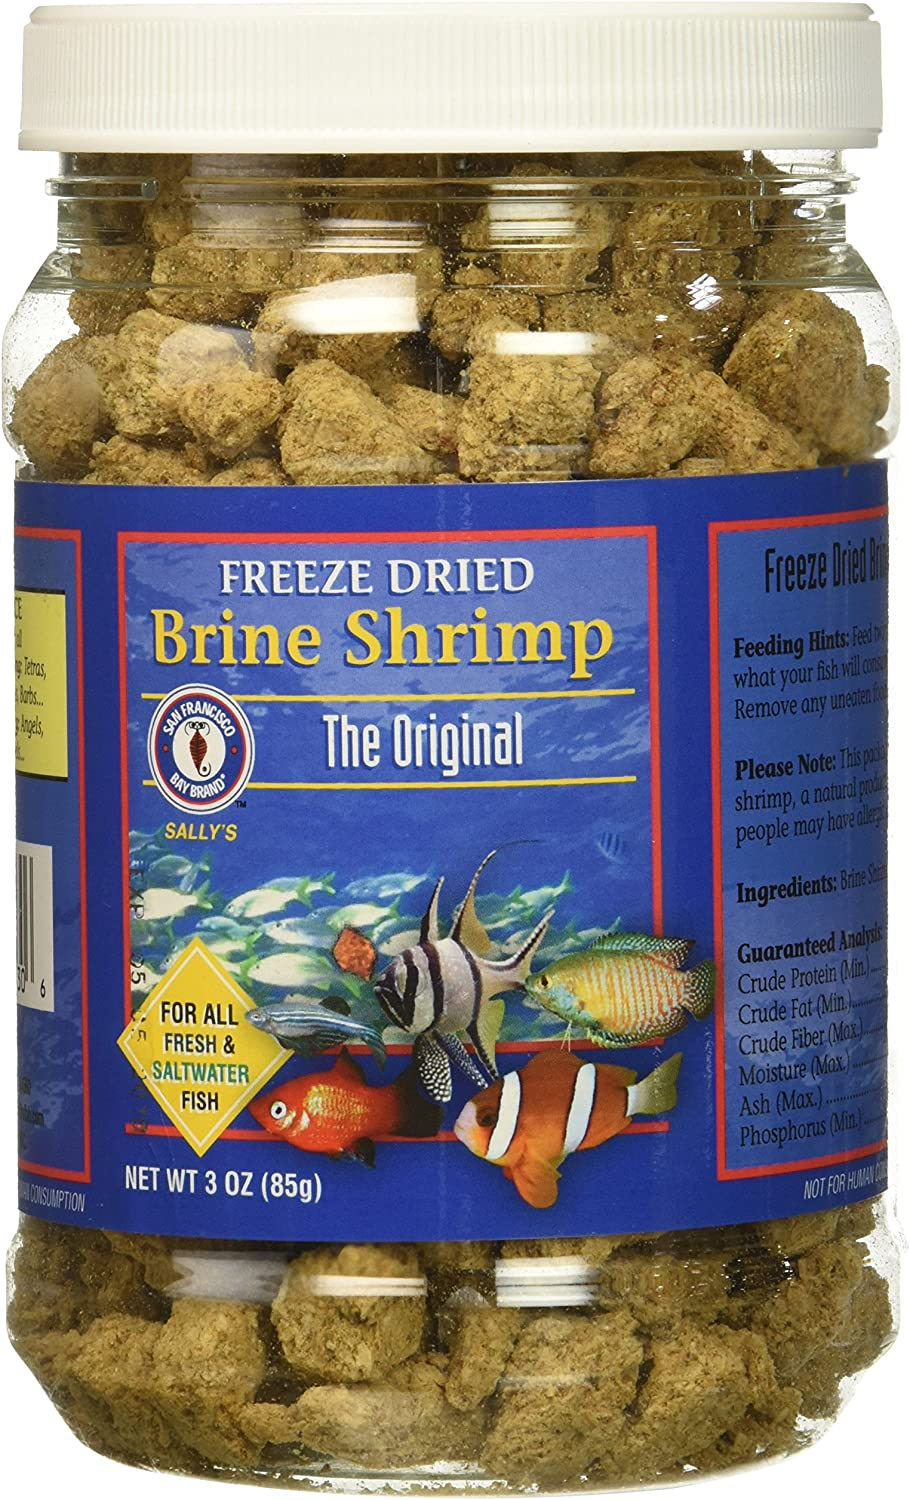 San Francisco Bay Brand ASF71130 Freeze Dried Brine Shrimp for Fresh and Saltwater Fish, 85gm